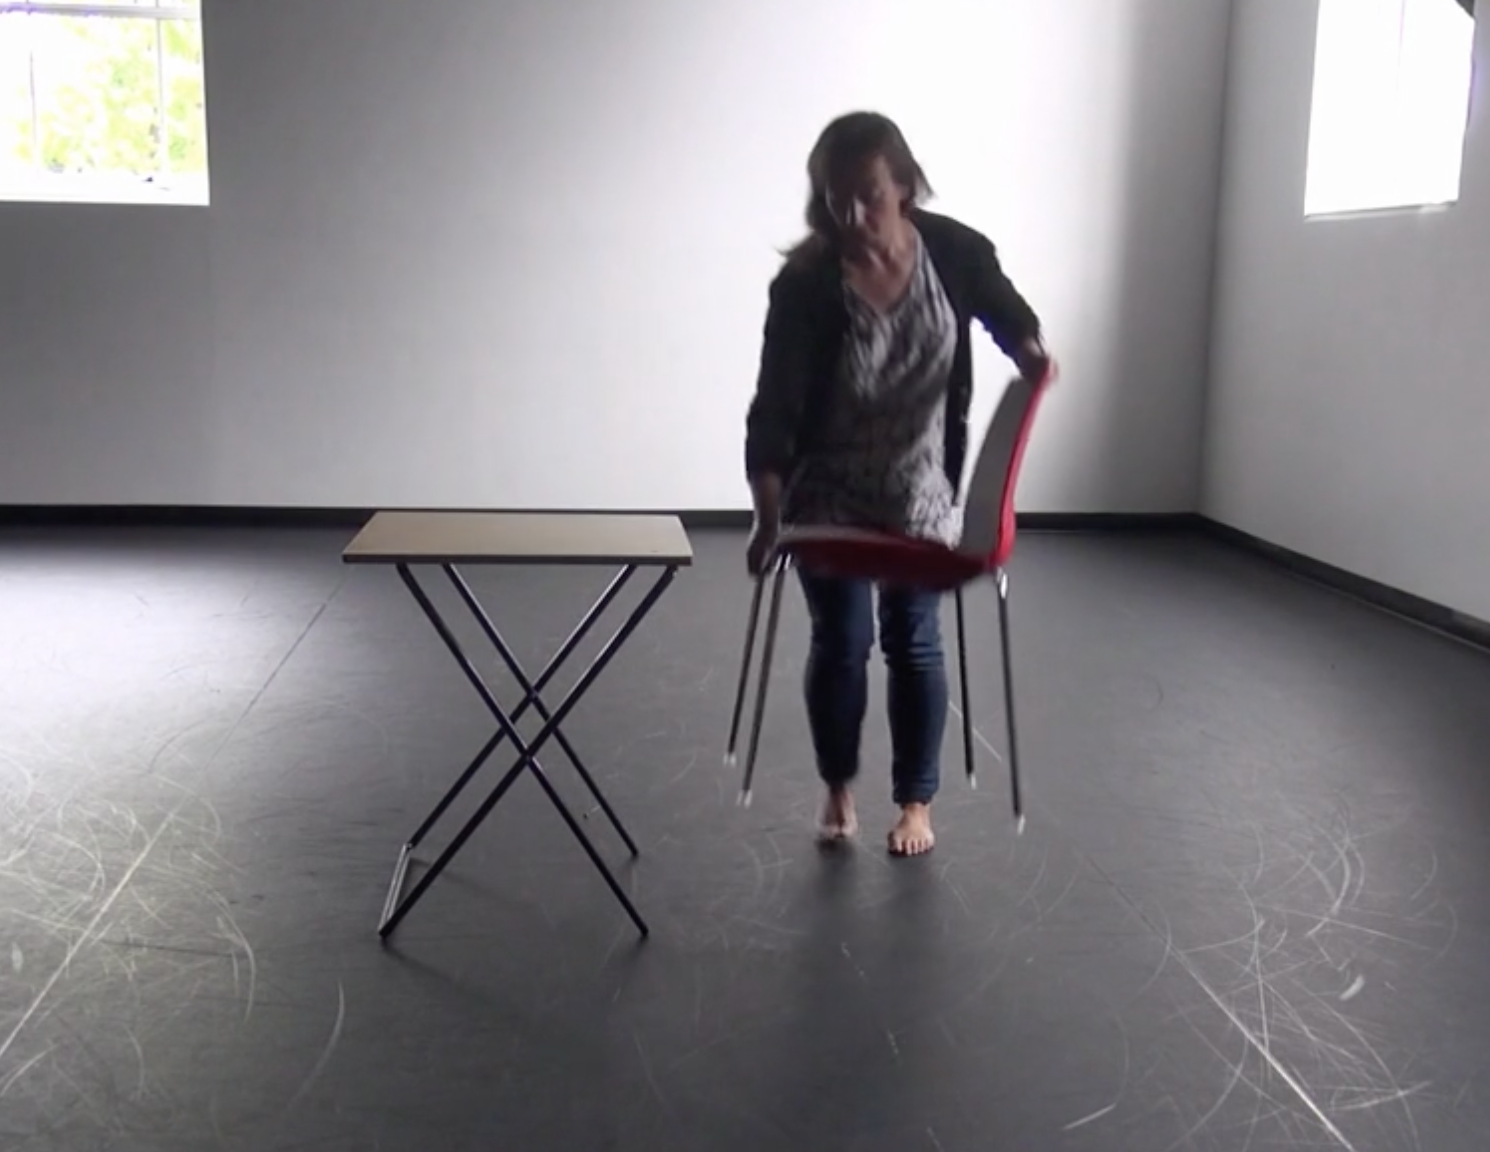 Repetition with Table and Chair